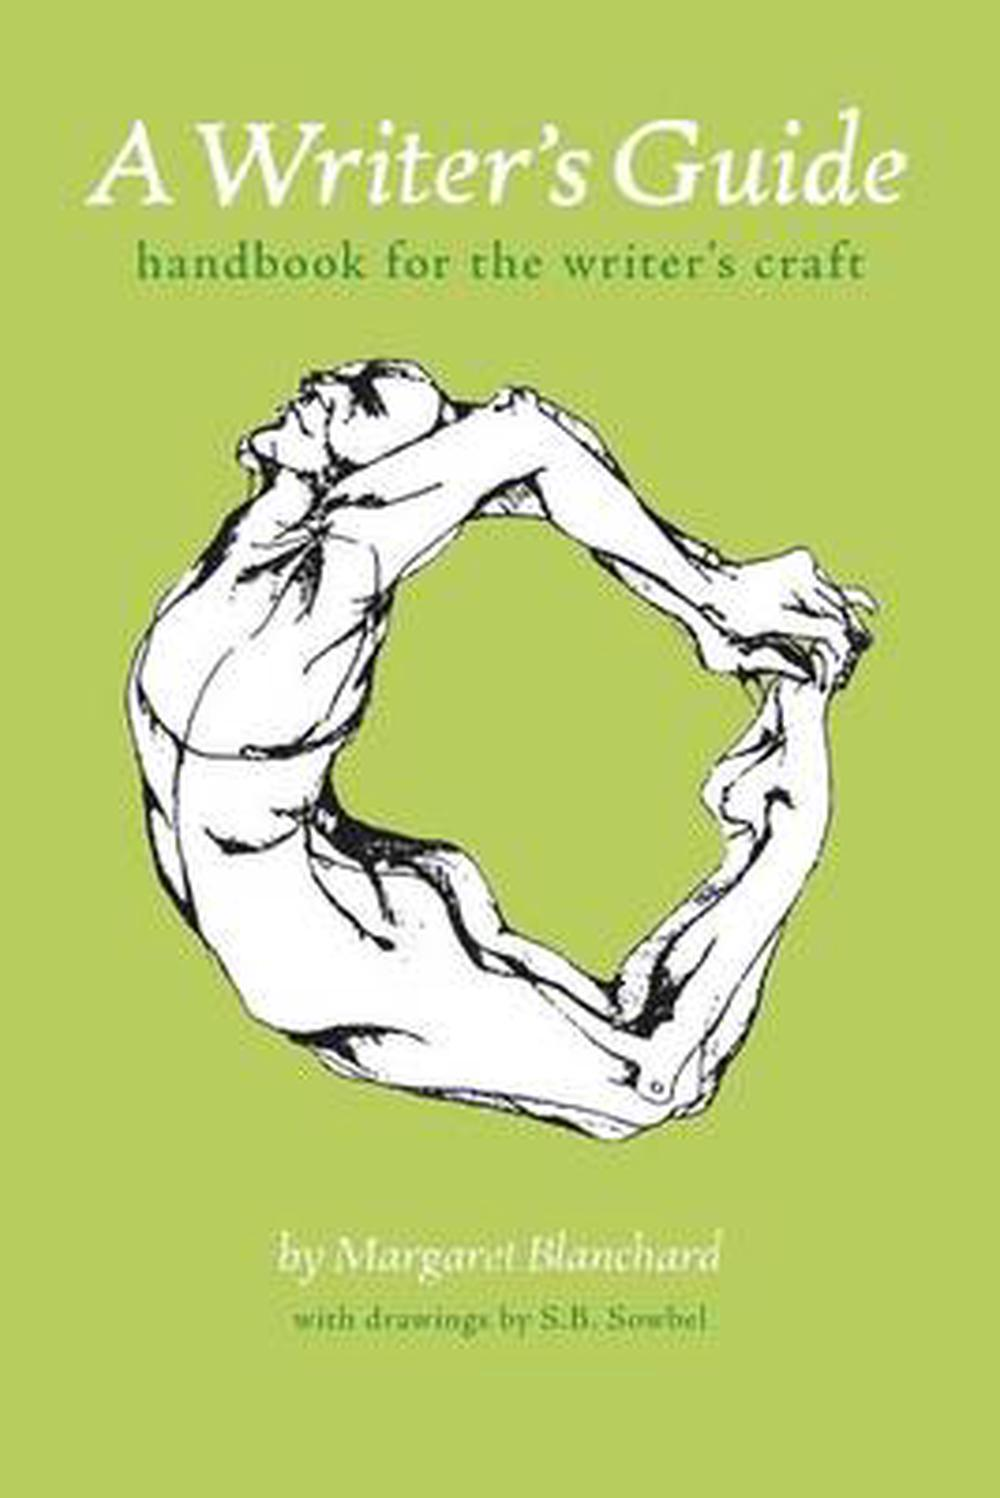 A Writer's Guide: Handbook for the Writer's Craft by